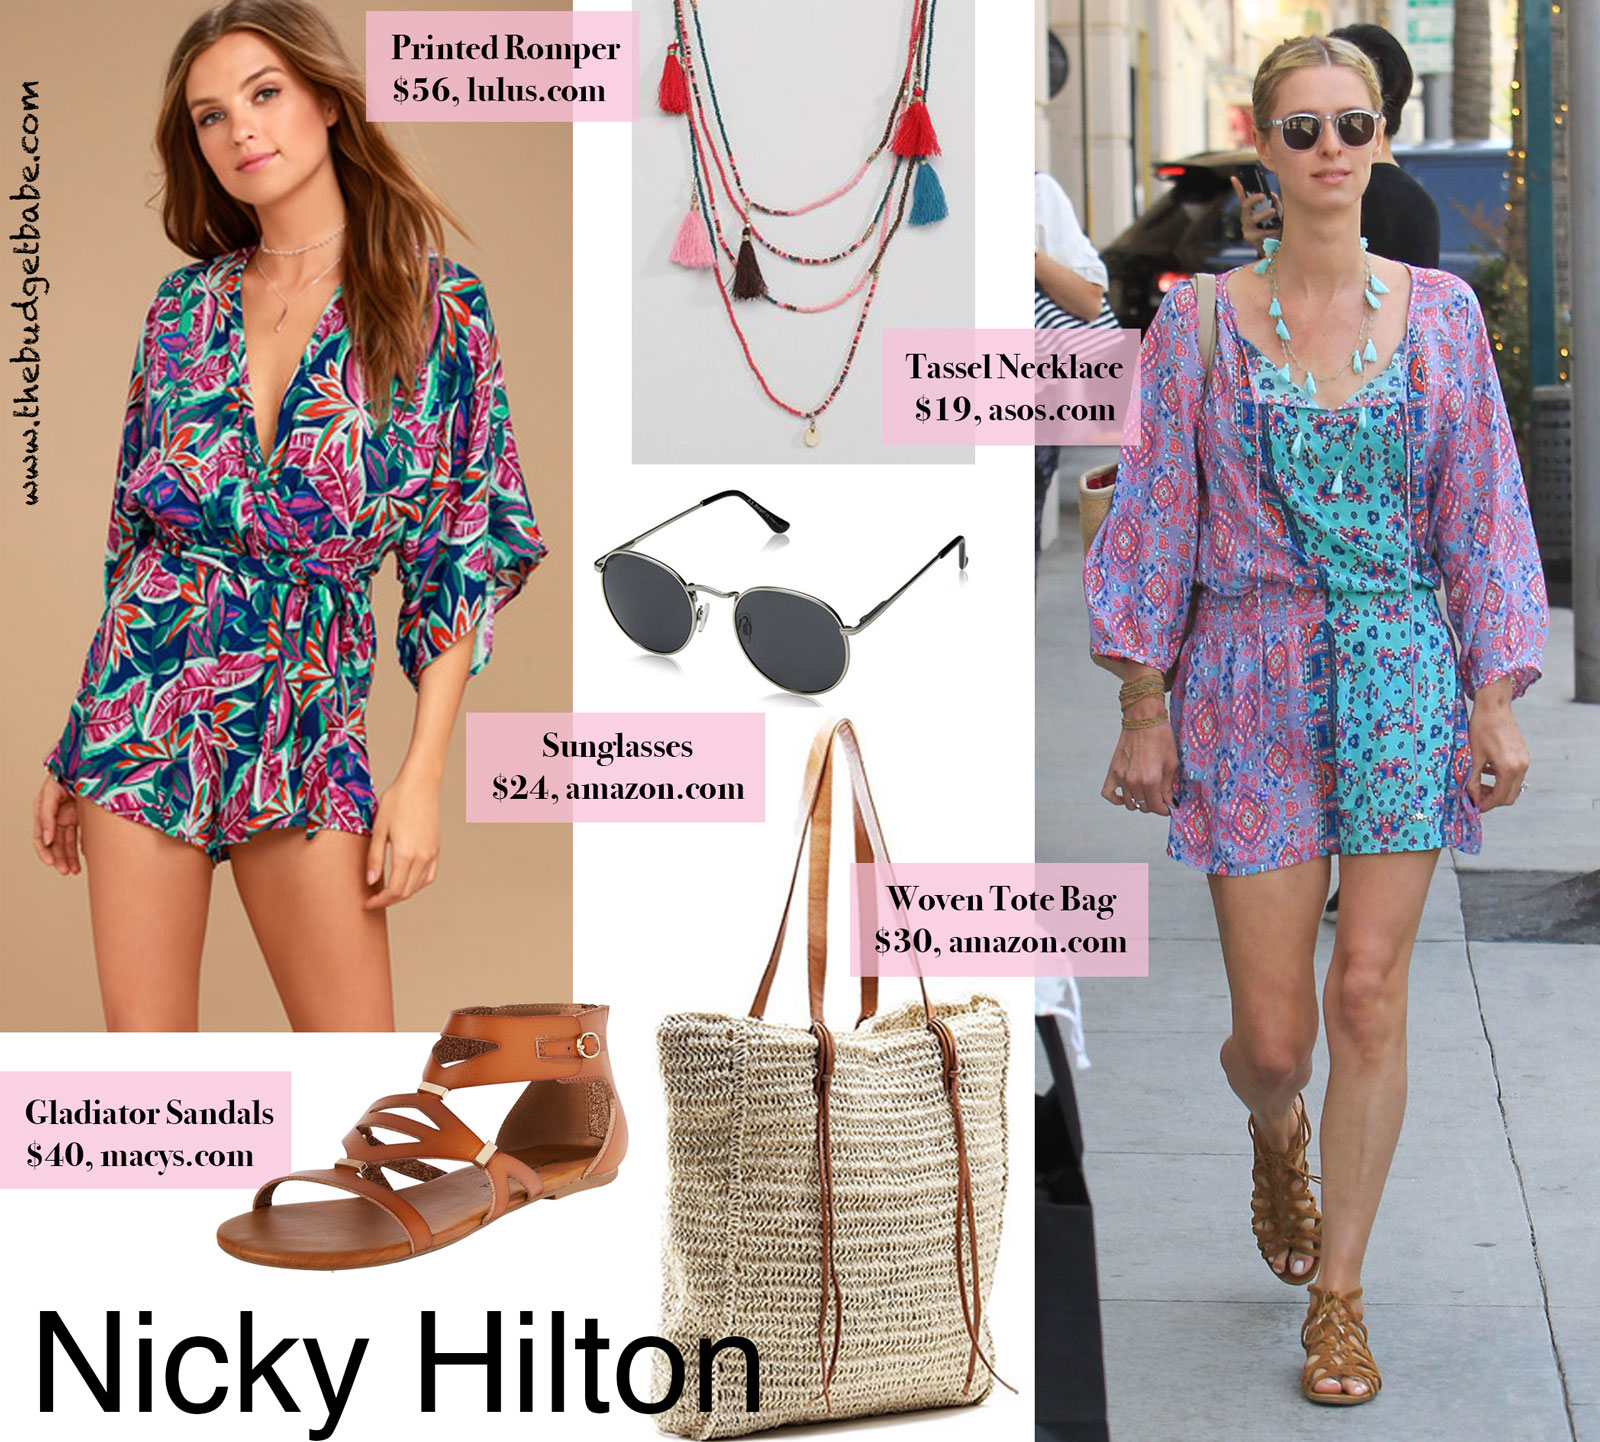 Nicky Hilton's Bright Printed Romper Look for Less